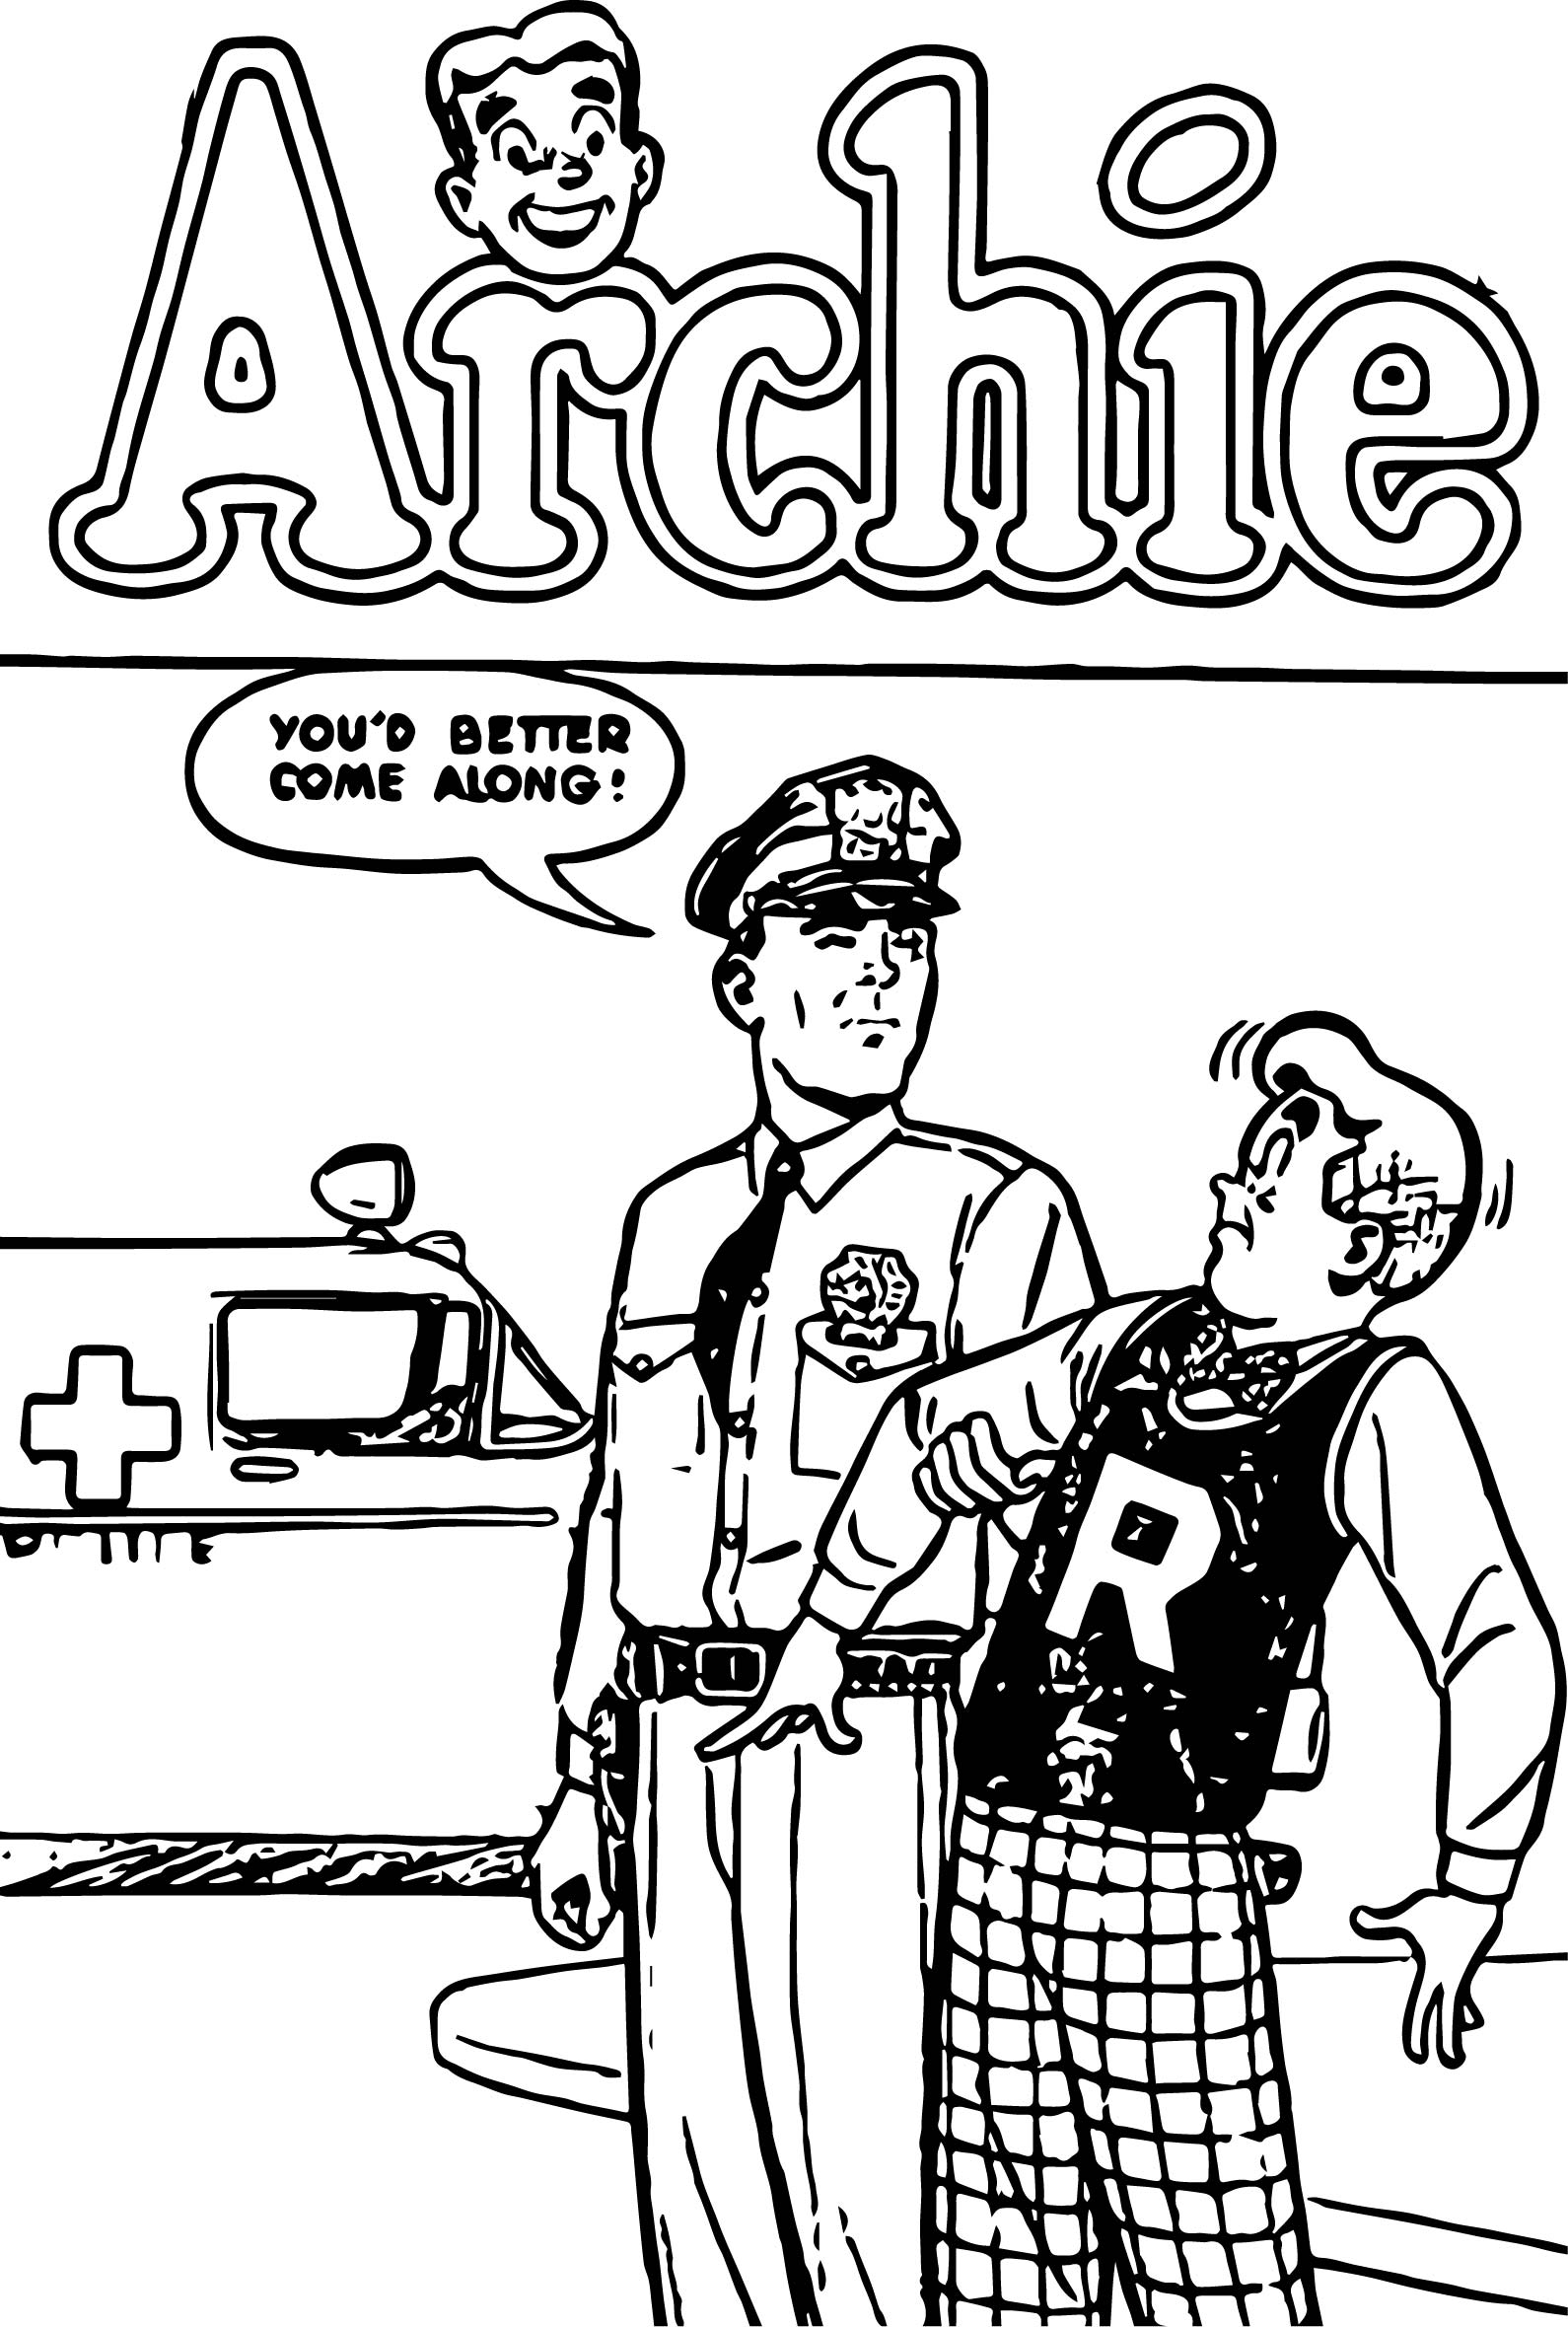 Archie Comics Police Coloring Page